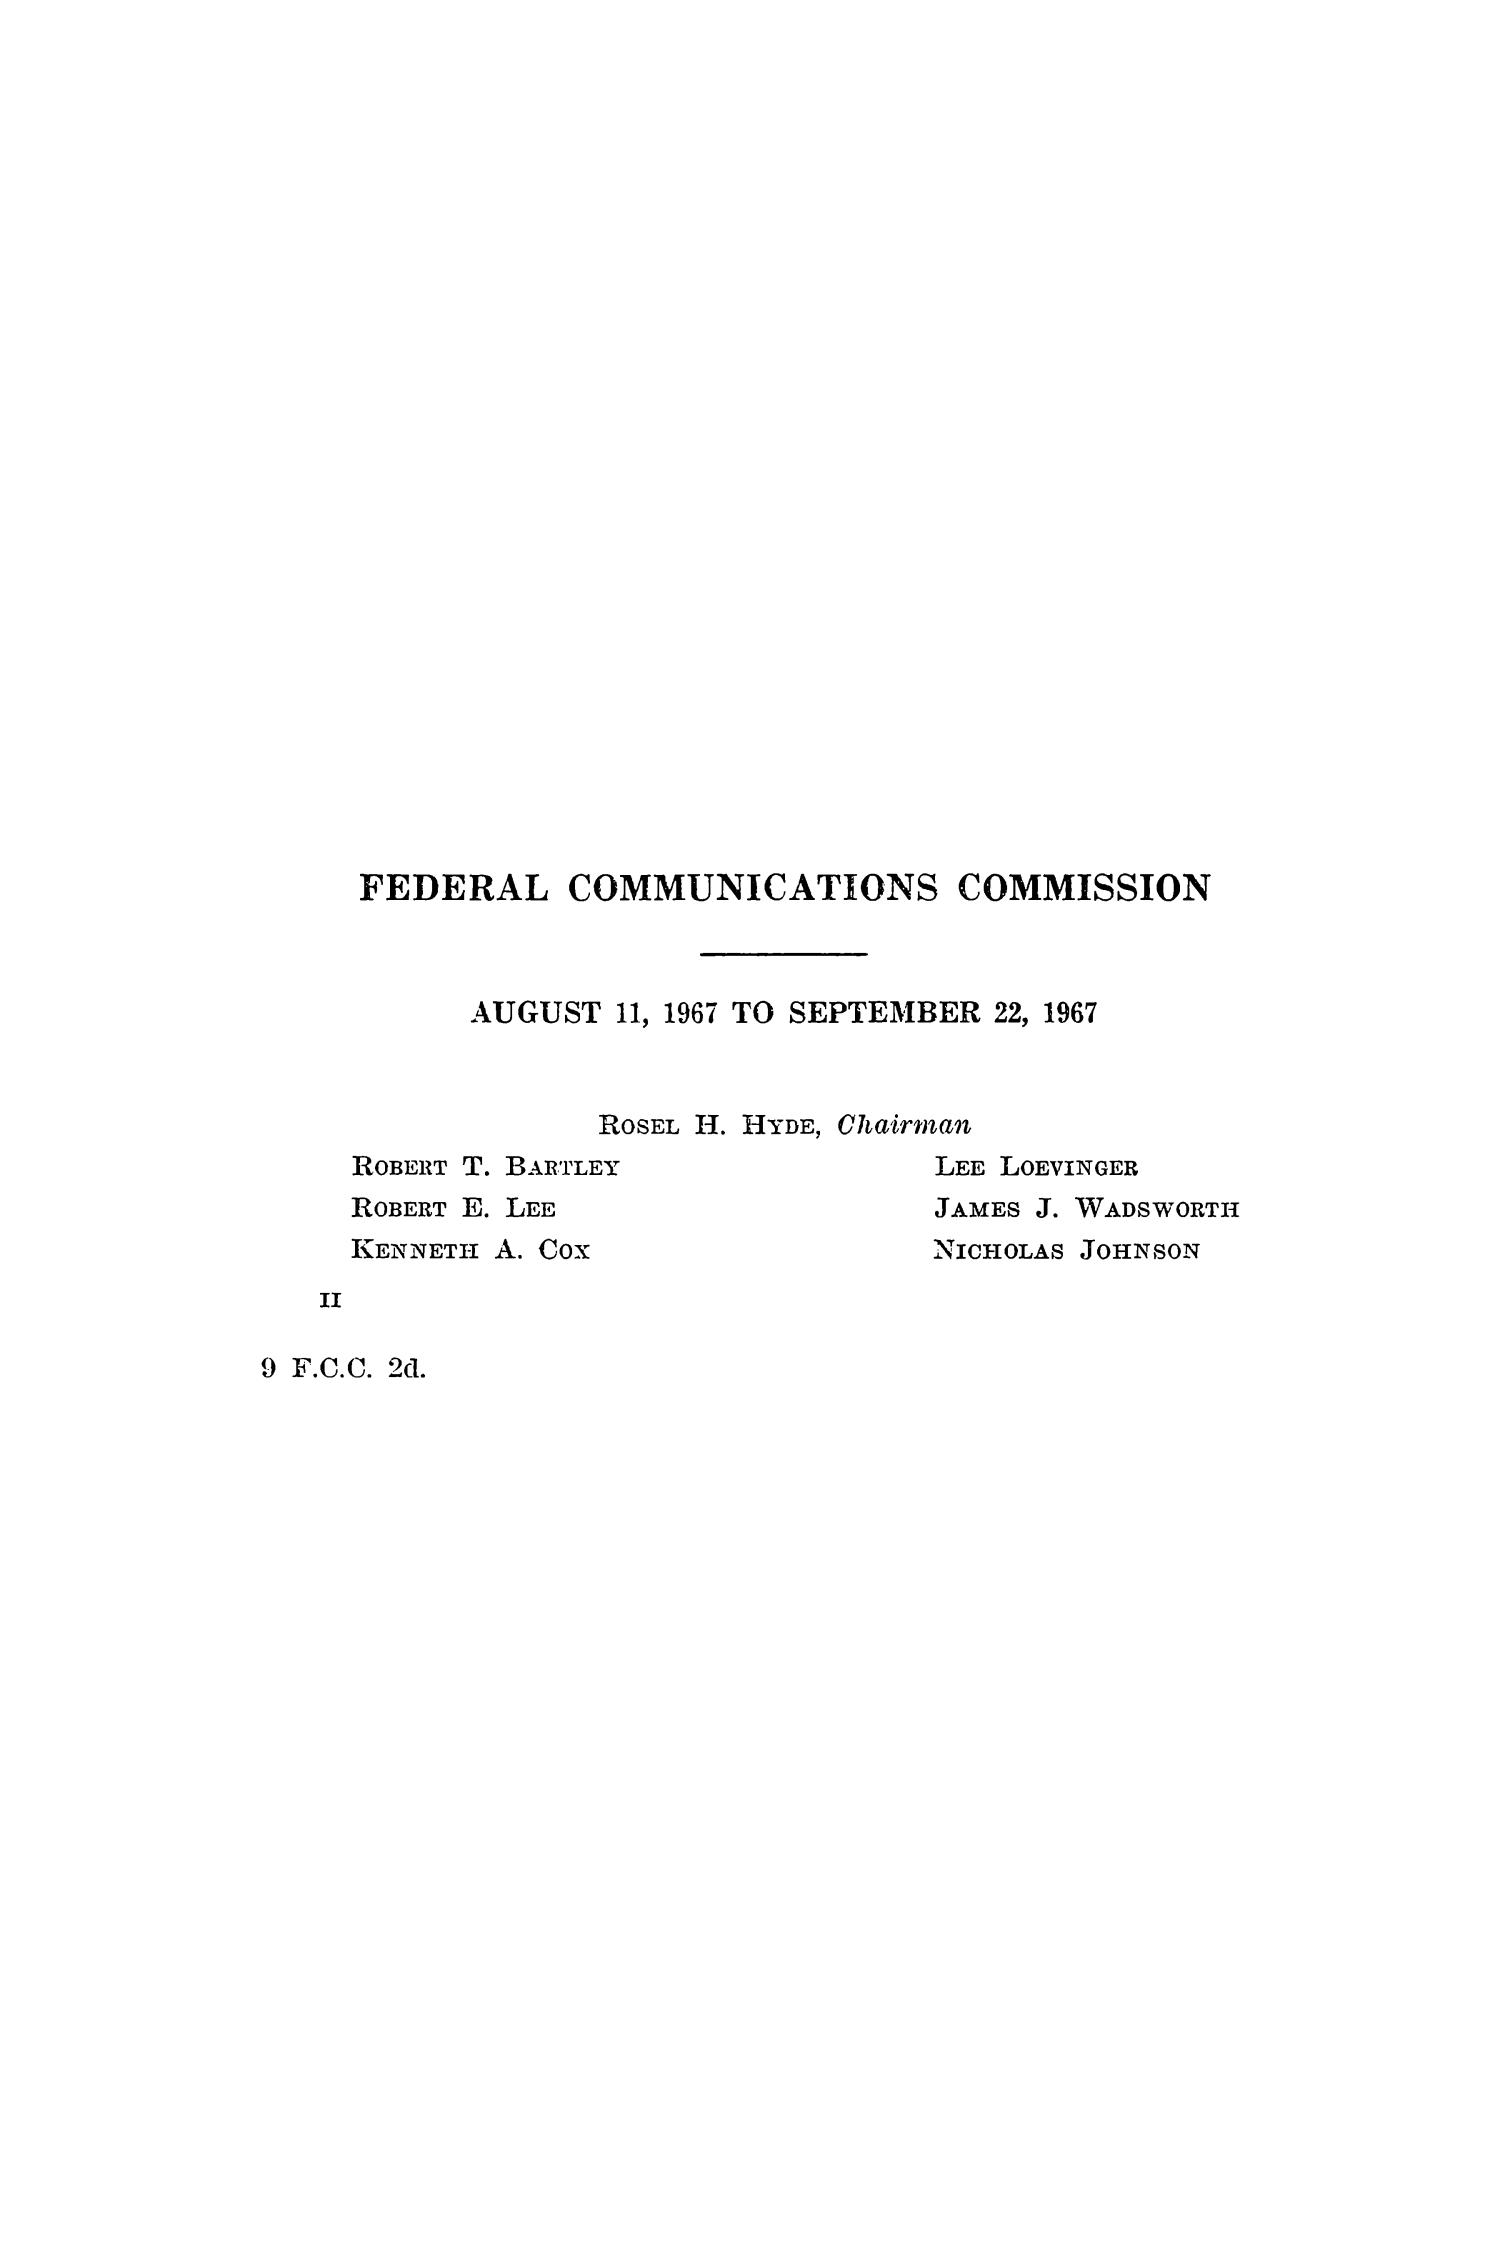 FCC Reports, Second Series, Volume 9, August 11, 1967 to September 22, 1967                                                                                                      II